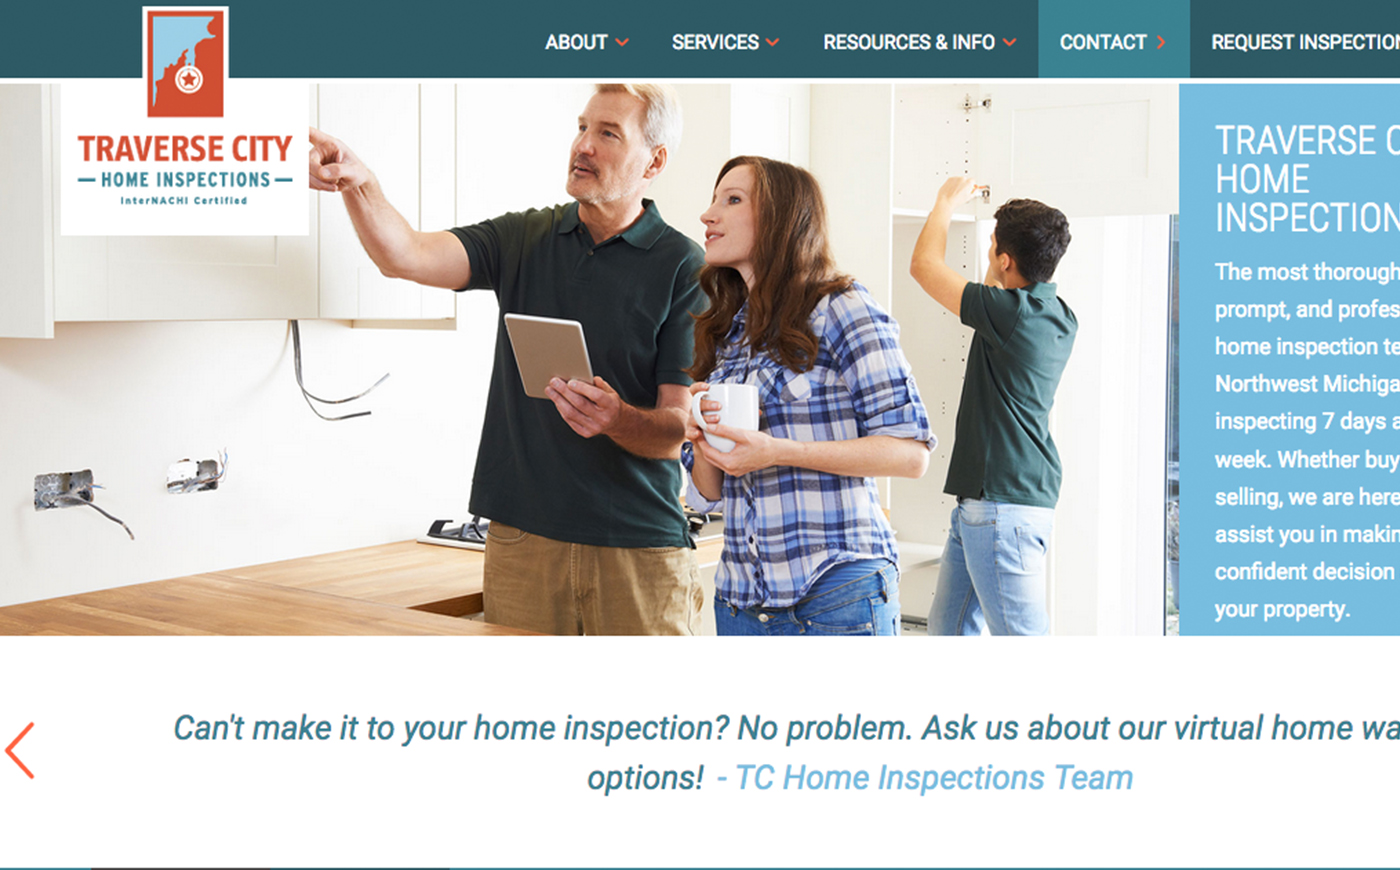 TC Home Inspections